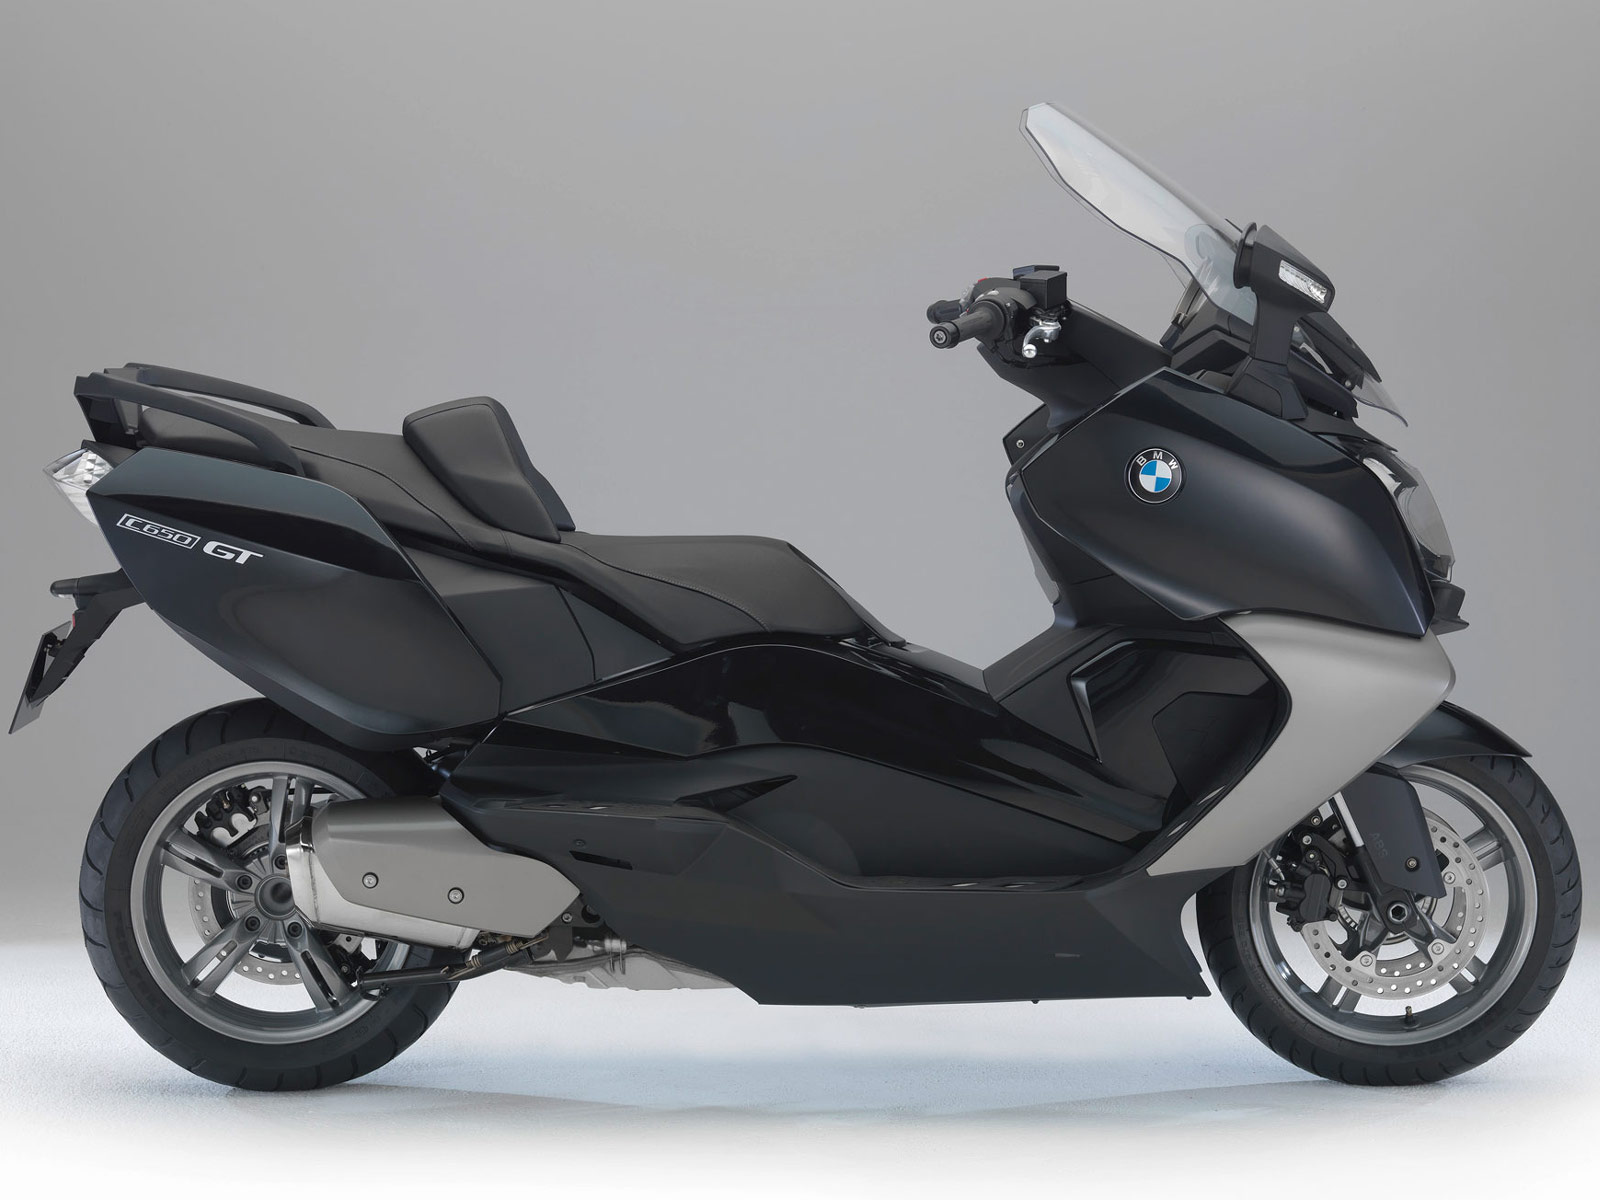 bmw scooter pictures 2012 c650 gt insurance information. Black Bedroom Furniture Sets. Home Design Ideas